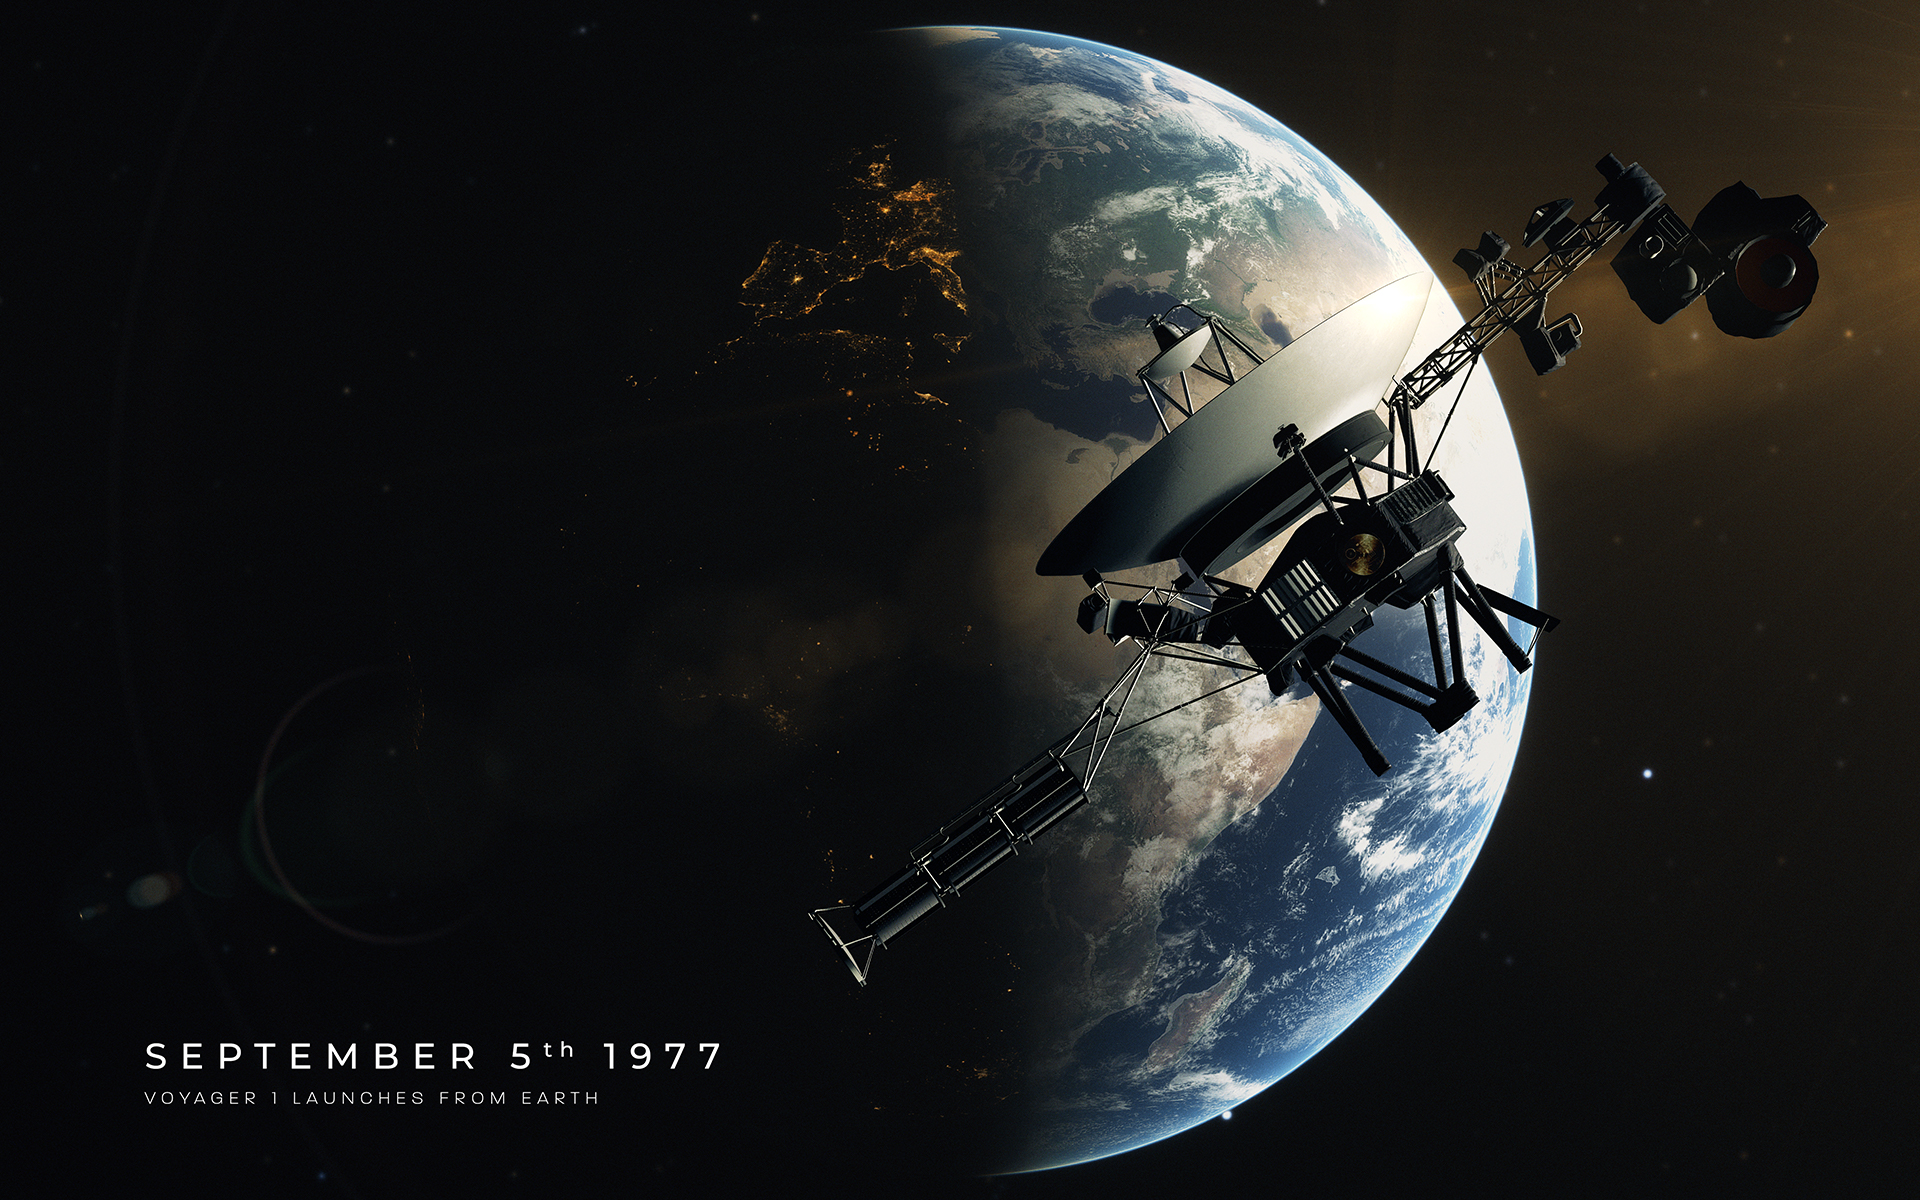 Voyager 1 - Launching from Earth (Poster)